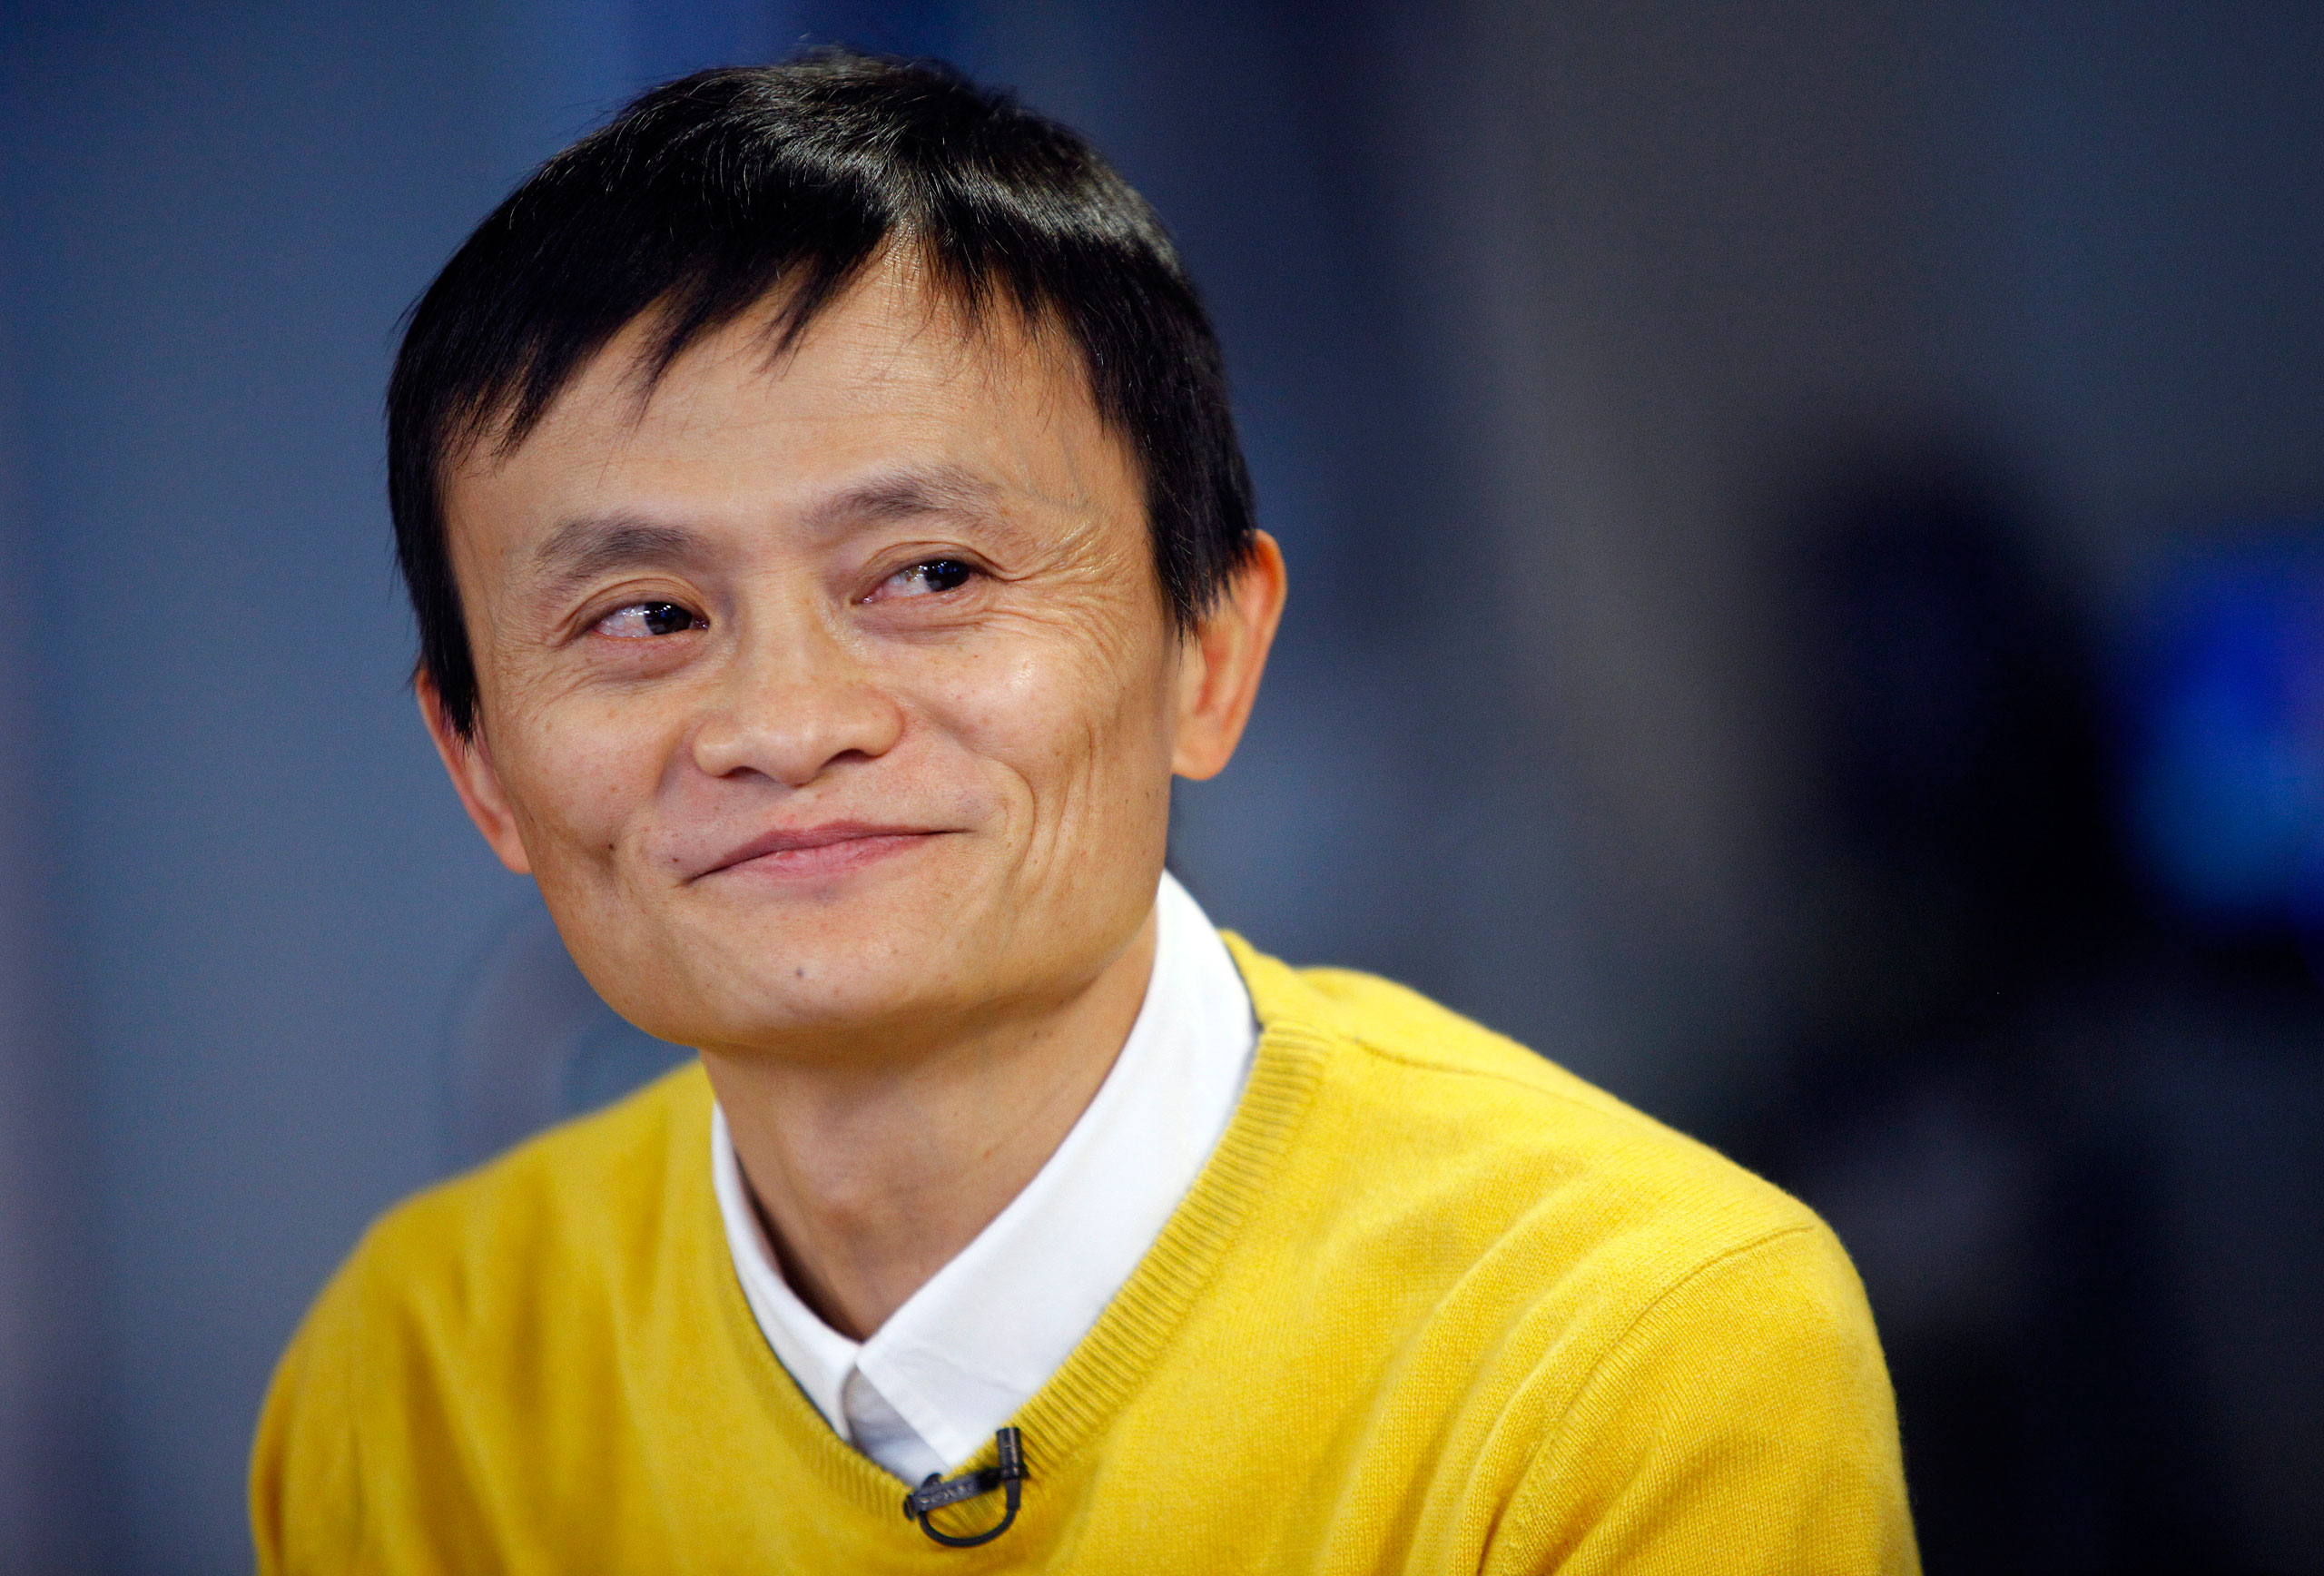 Alibaba CEO Jack Ma during an interview in New York City on March 12, 2009